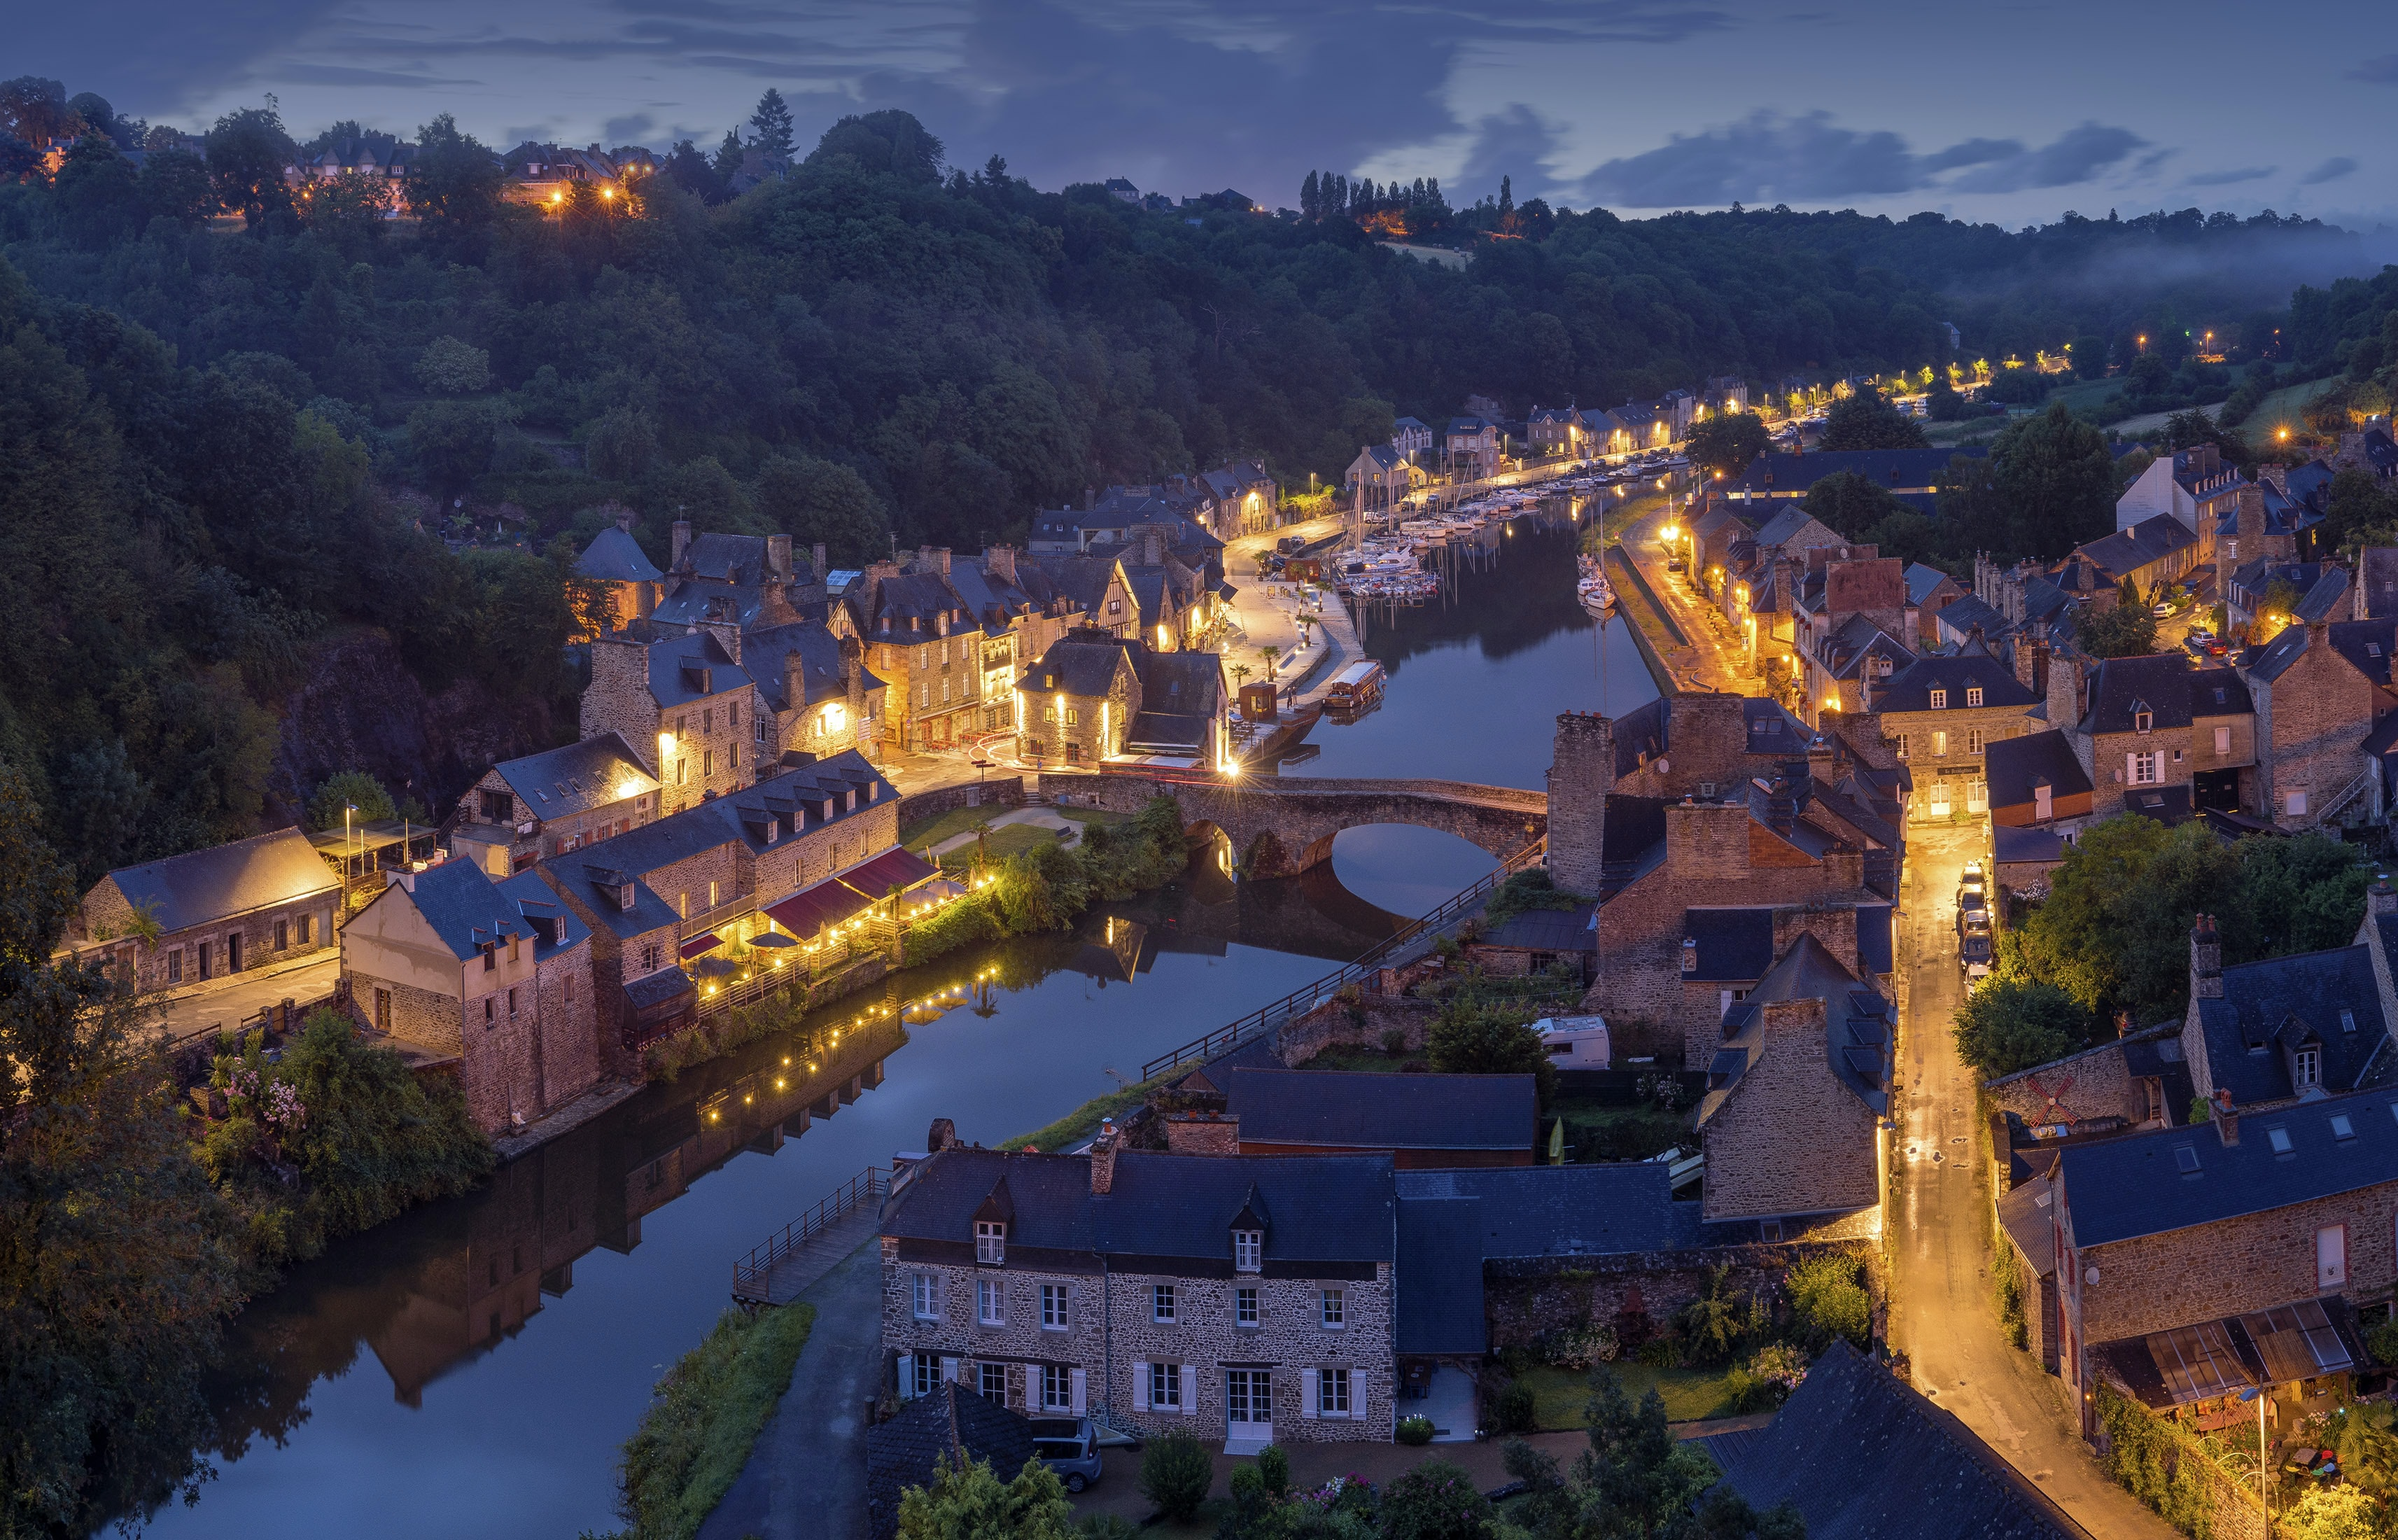 Aerial view of a charming European town on a small river